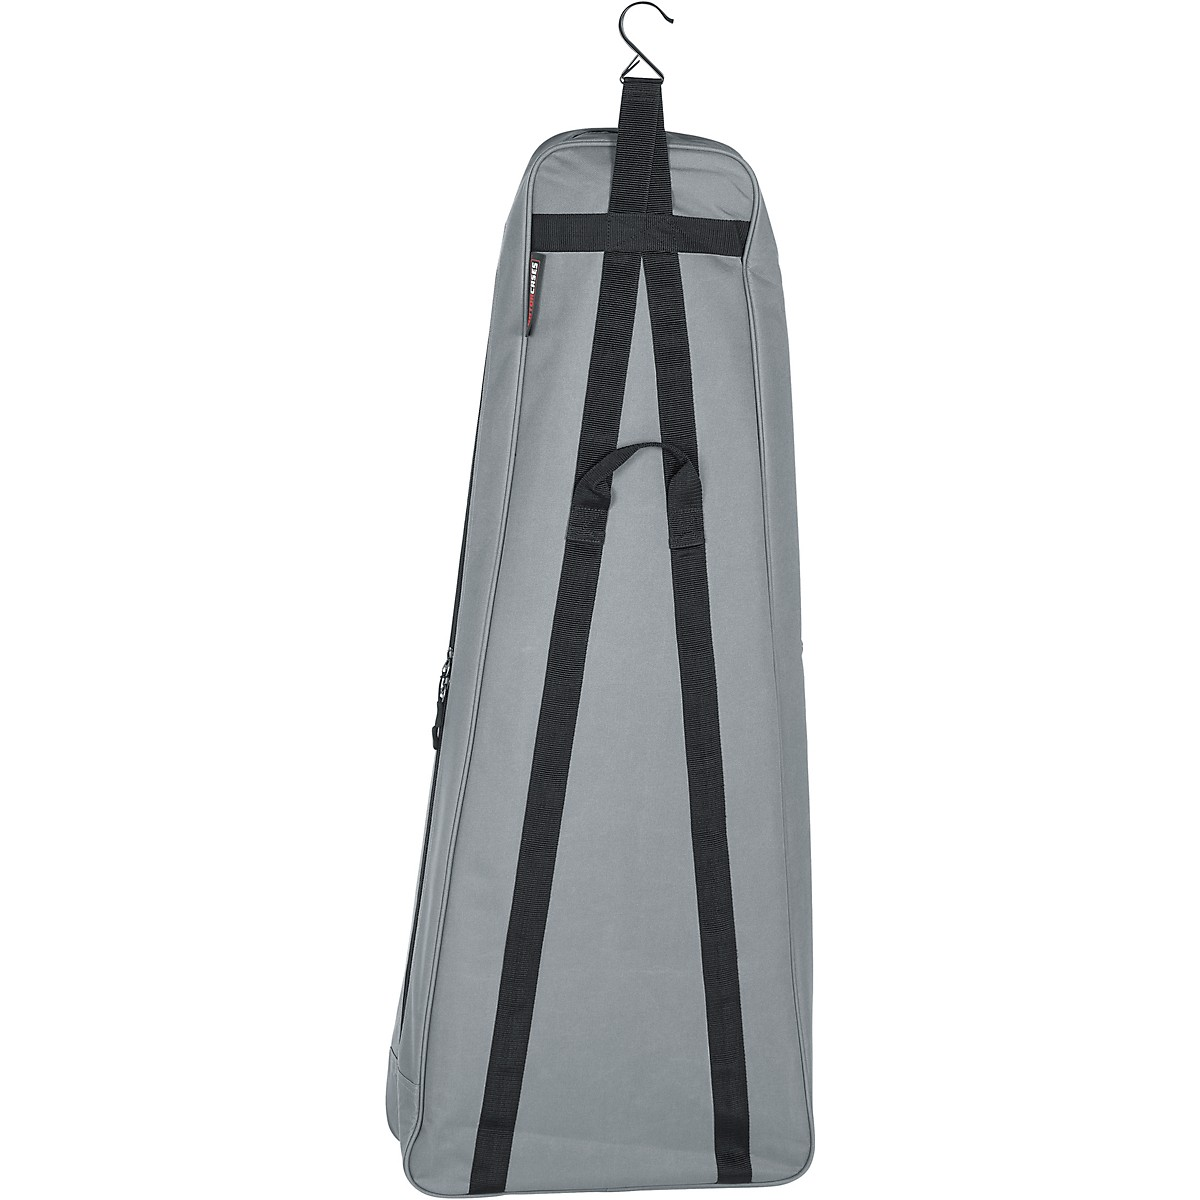 Gator GCB-ACOUSTIC Closet Hanging Acoustic Guitar Bag